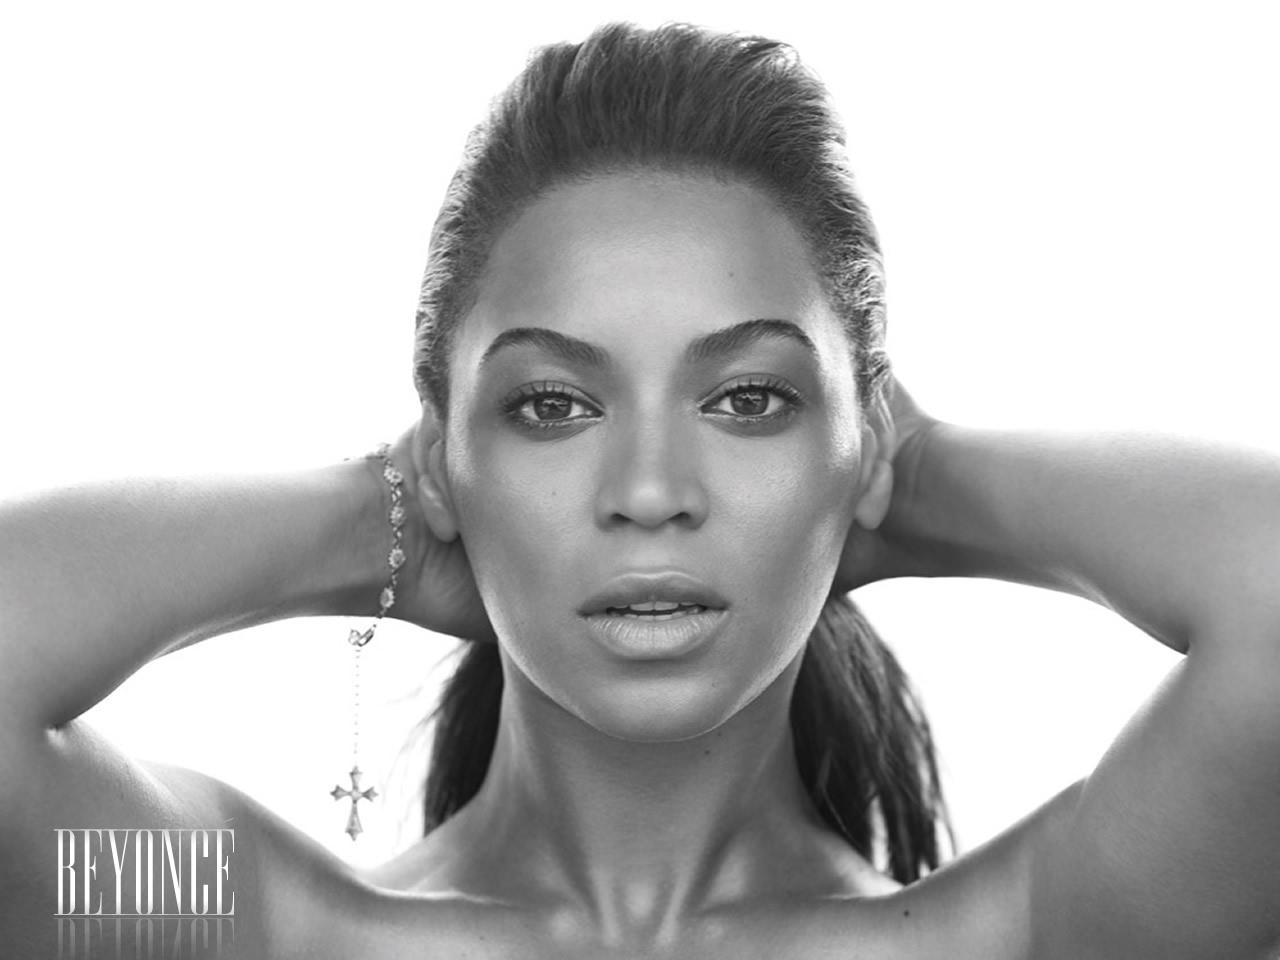 Full HD p Beyonce Wallpapers HD, Desktop Backgrounds  1280x960